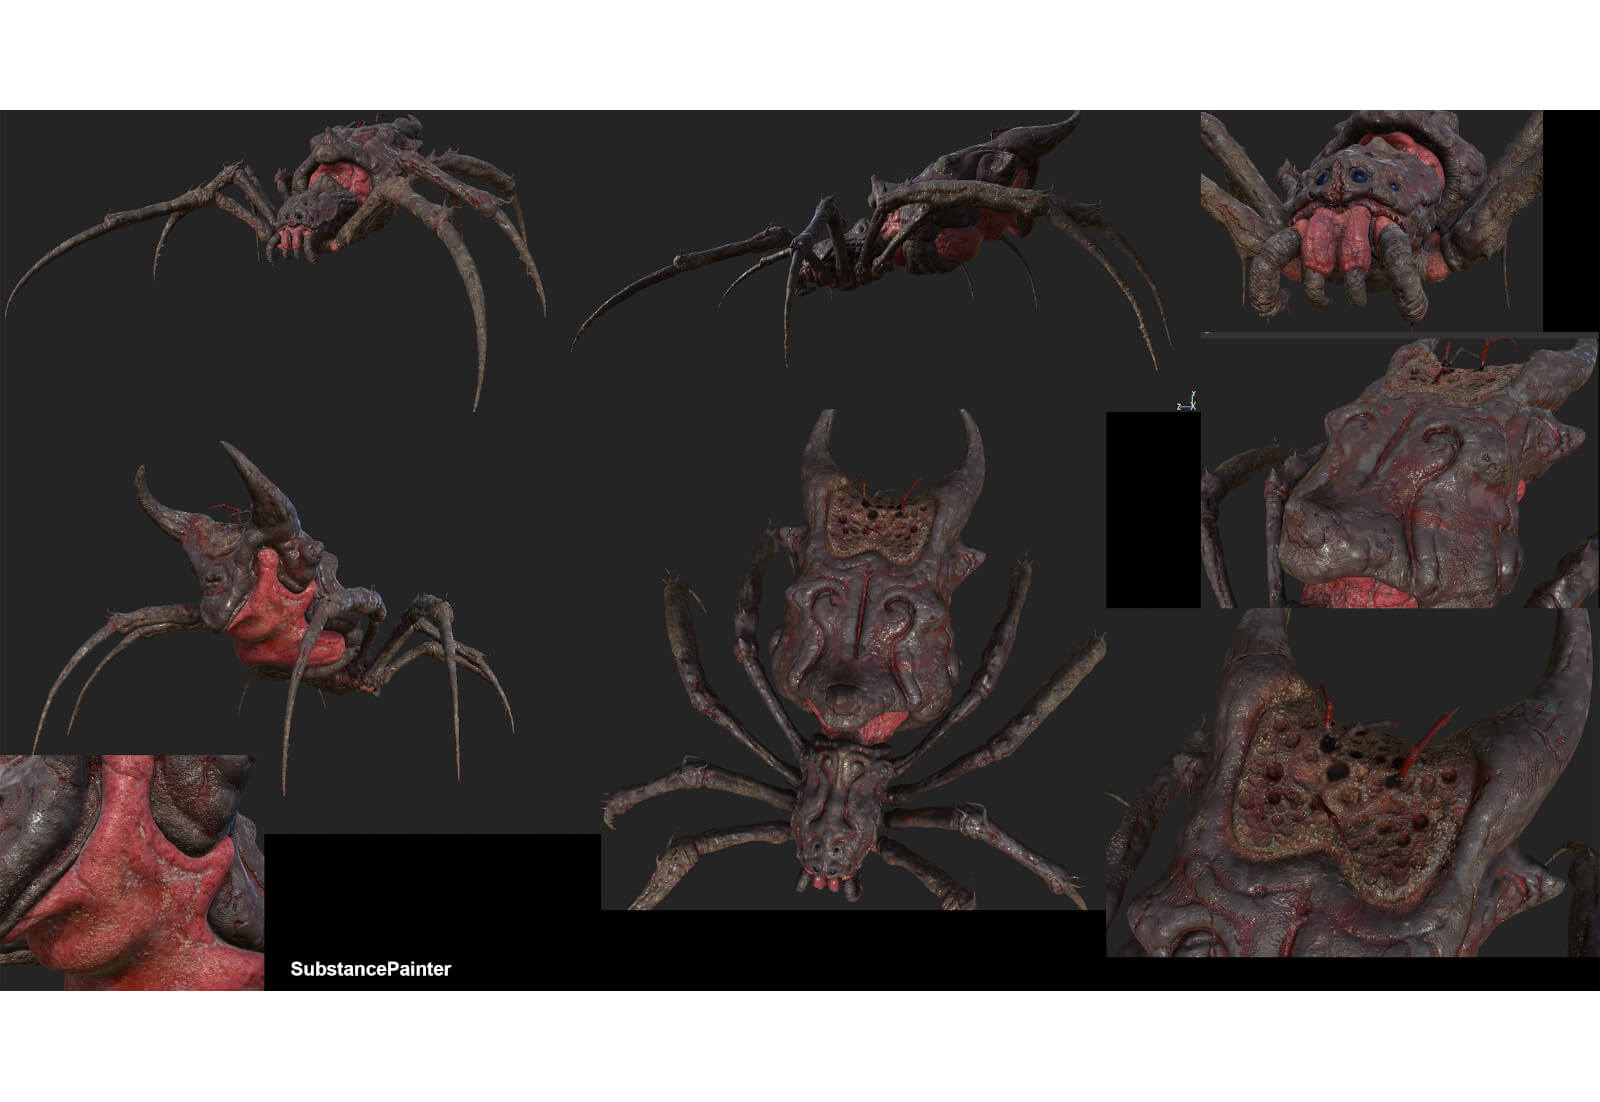 Multiple angles of 3D spider model with painted textures